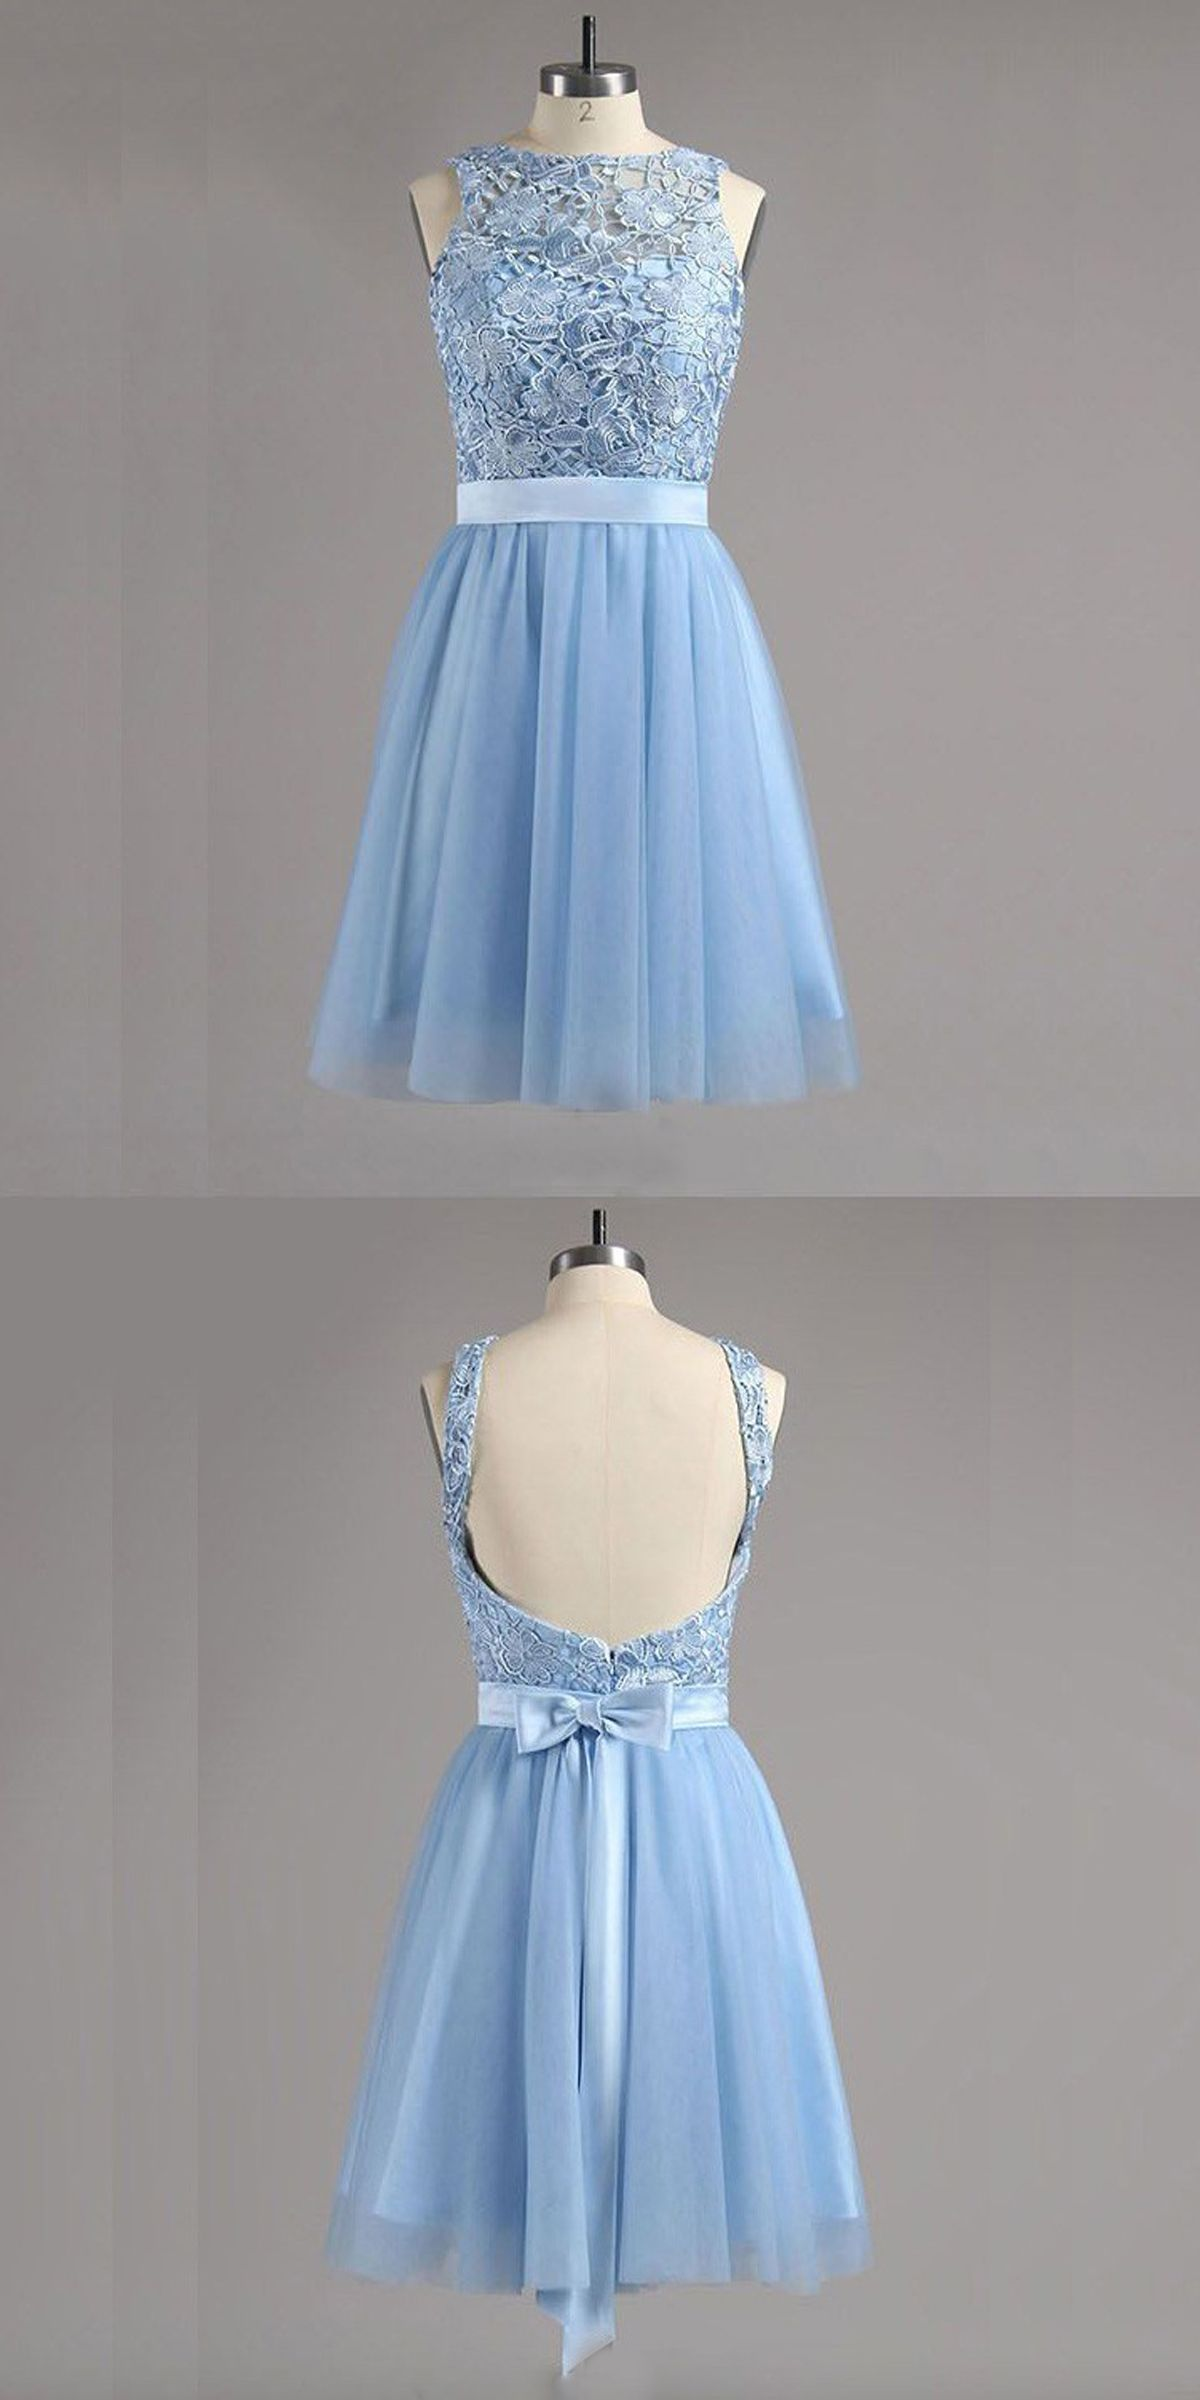 Aline bateau backless blue tulle homecoming dress with lace bowknot